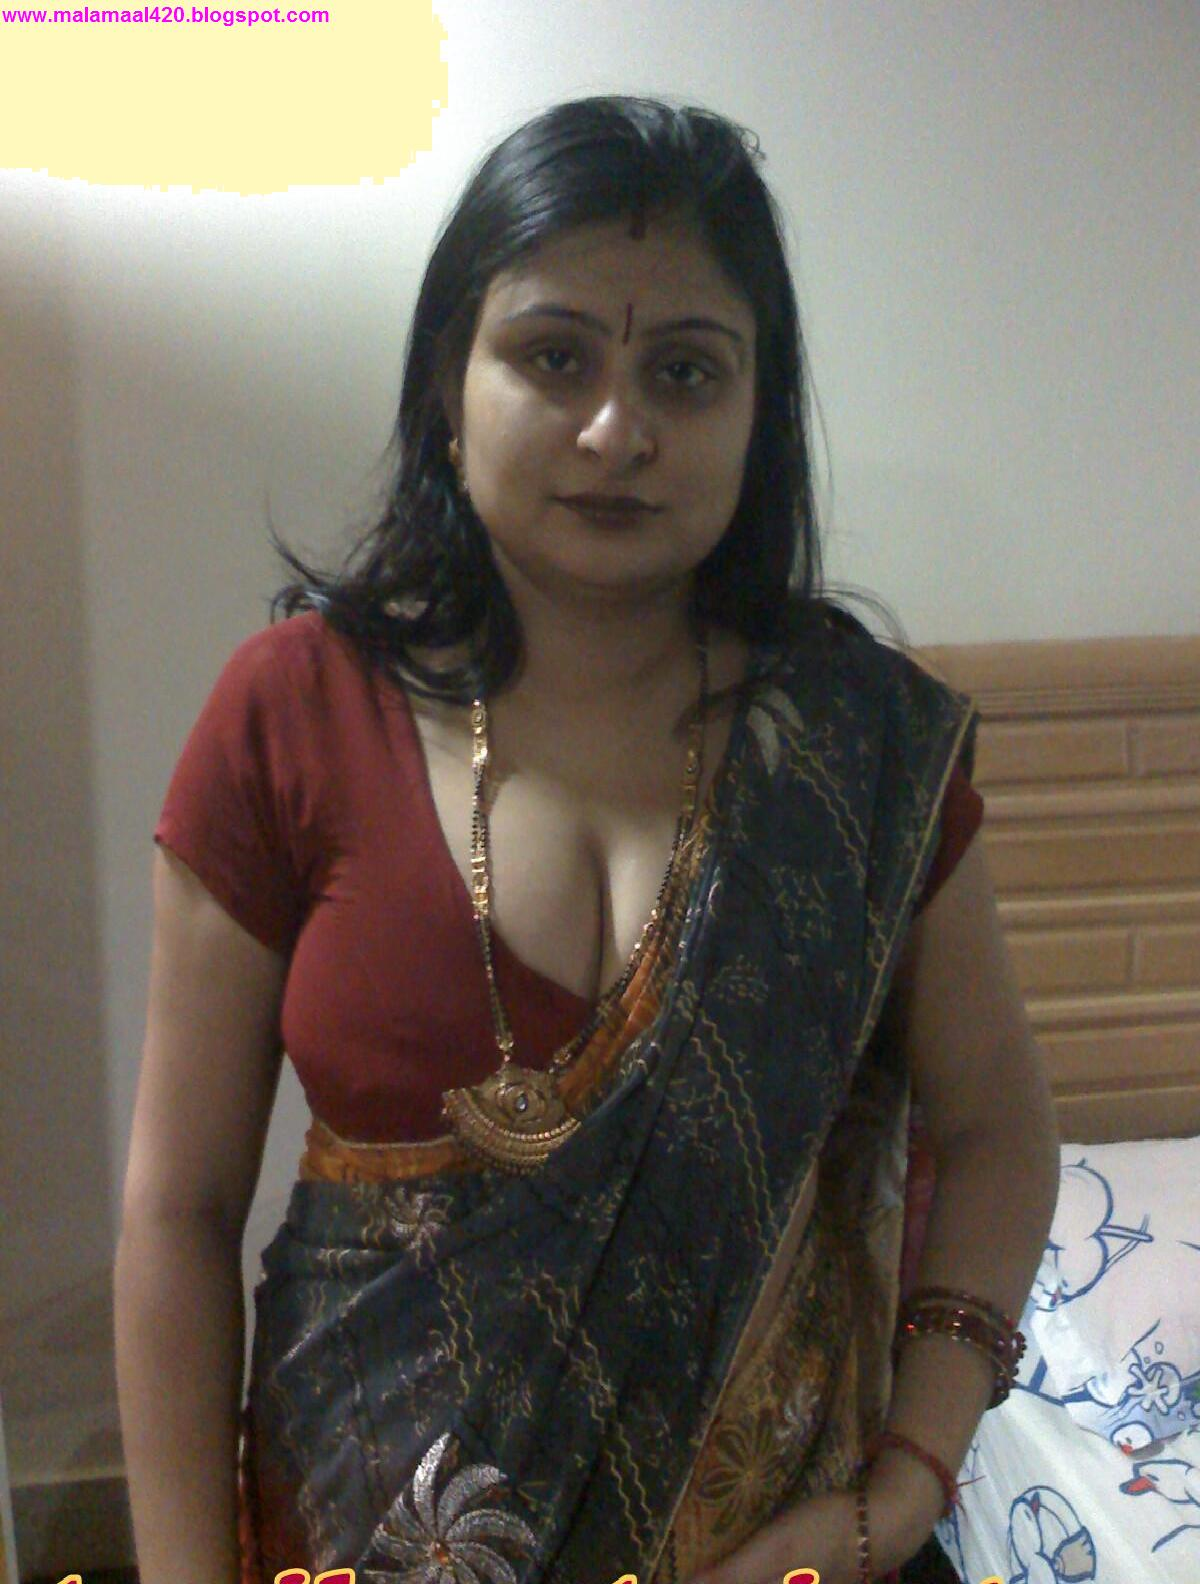 Desi girls sex videos site